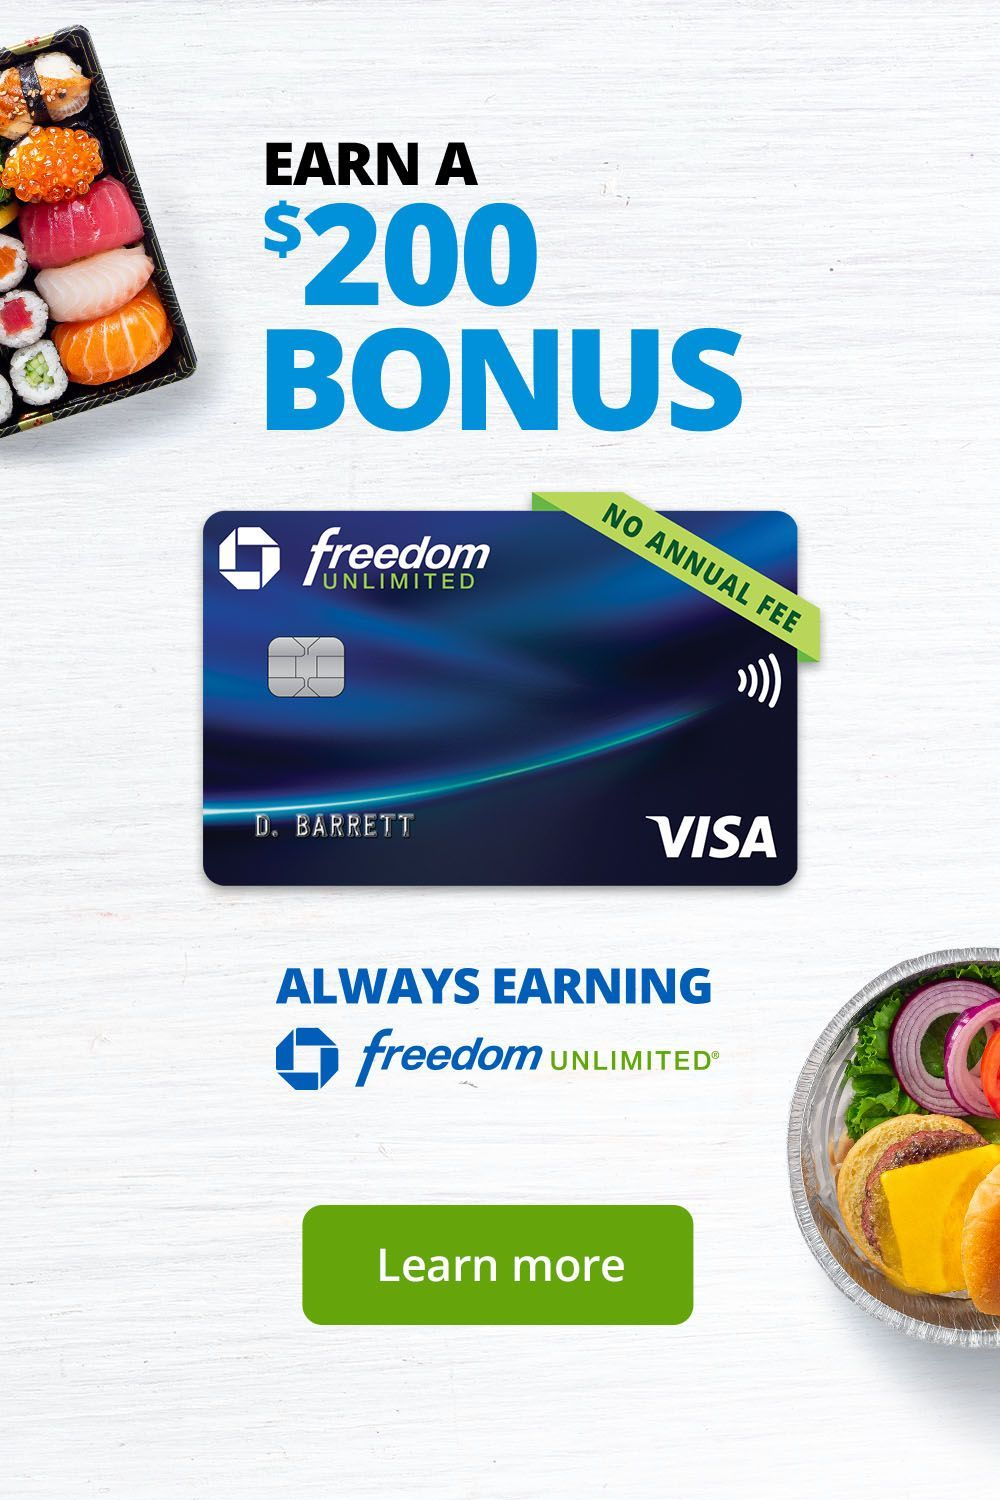 With Chase Freedom Unlimited You Re Always Earning Earn A 200 Bonus And Get 0 Intro Apr For The First 15 Mont Chase Freedom How To Eat Better I Love School